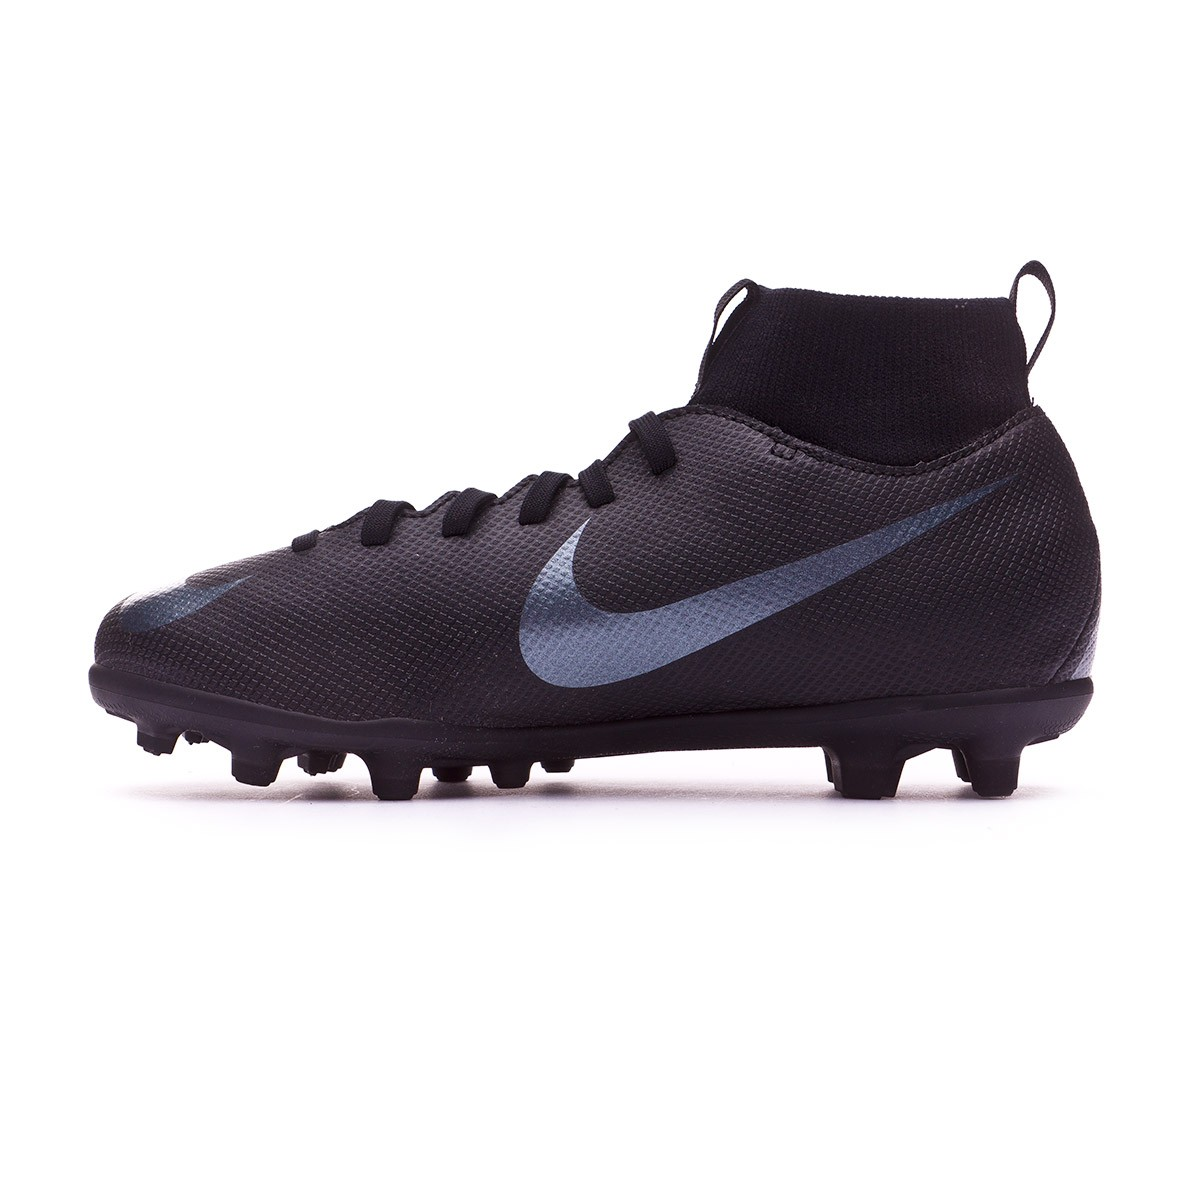 reputable site cbebd 26d79 Bota Mercurial Superfly VI Club MG Niño Black